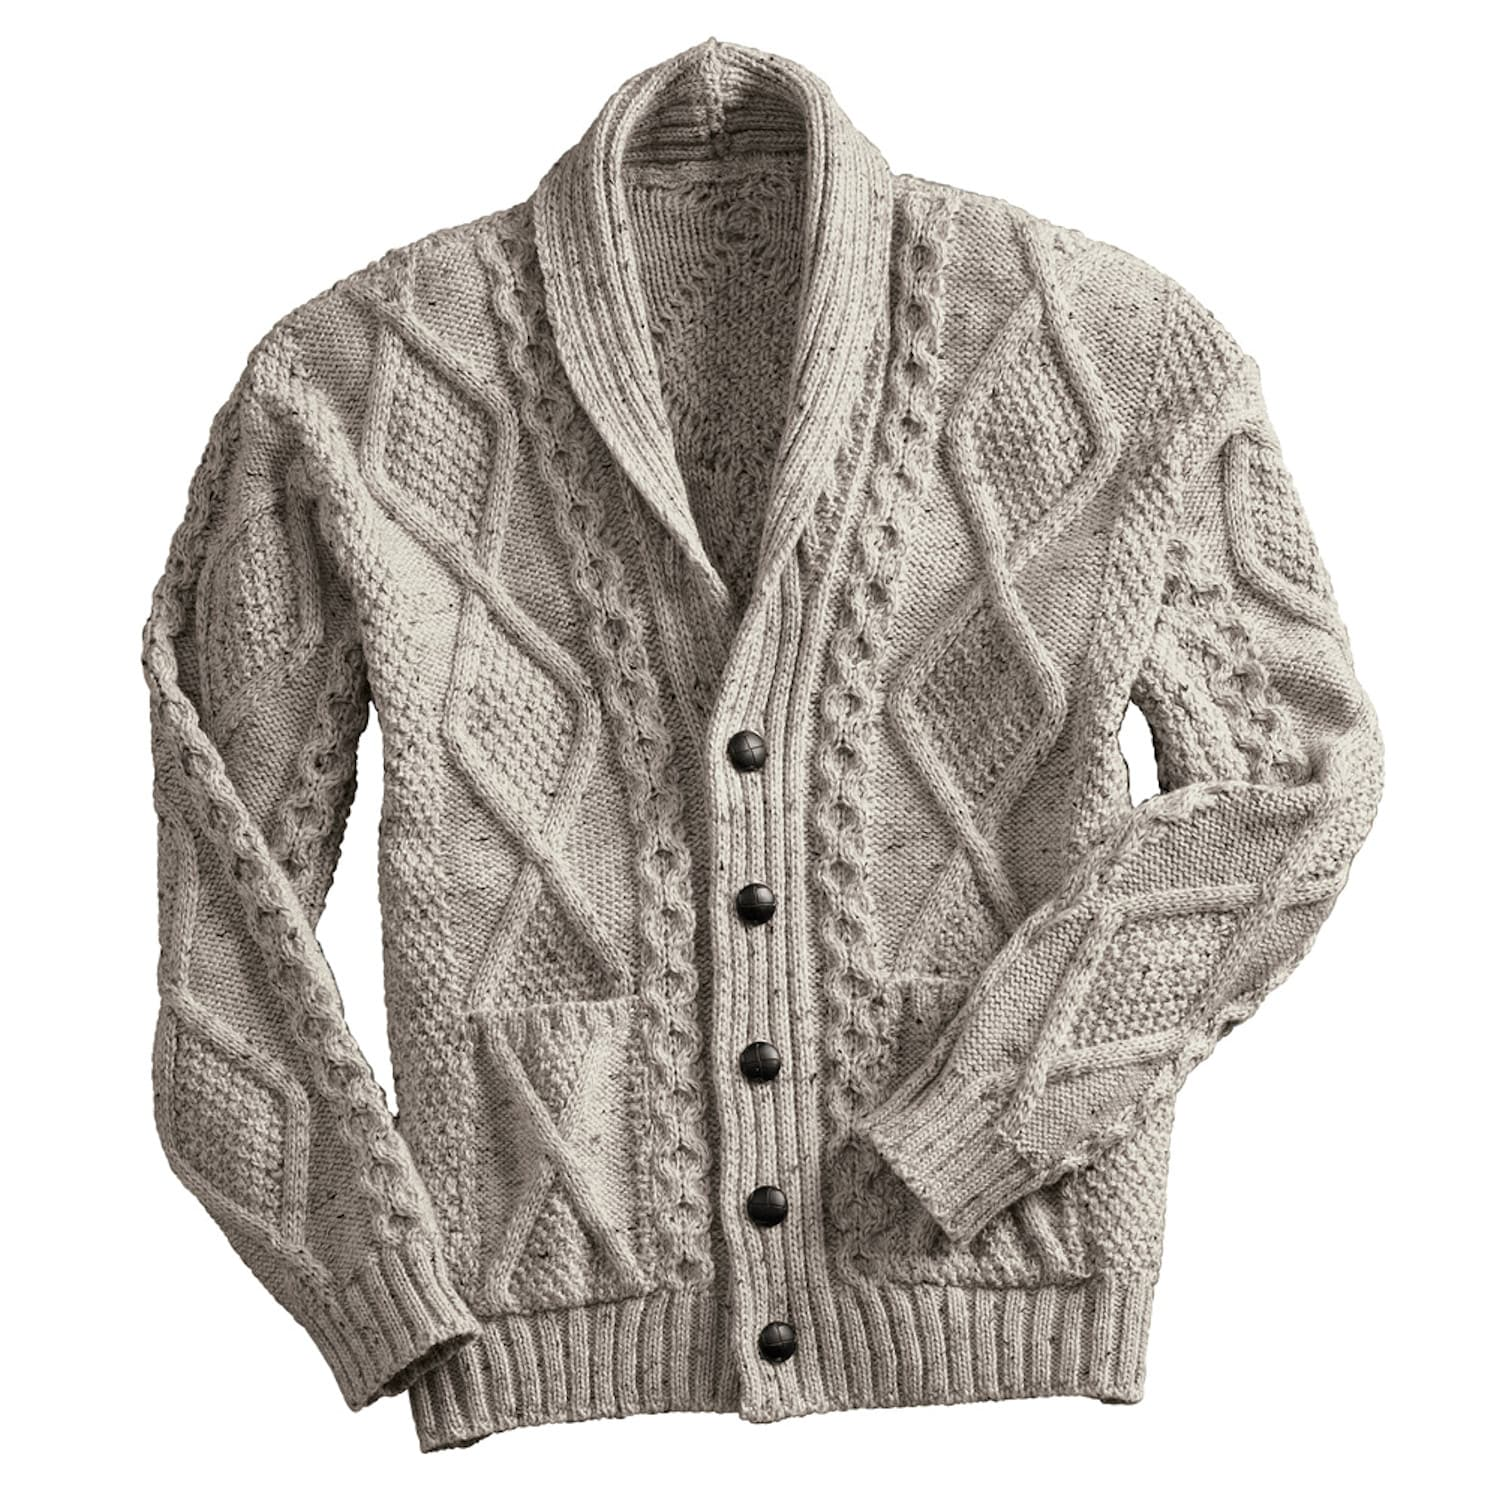 Knitting Patterns For Cardigan With Shawl Collar : Aran Shawl Collar Cable Knit Cardigan Sweater eBay